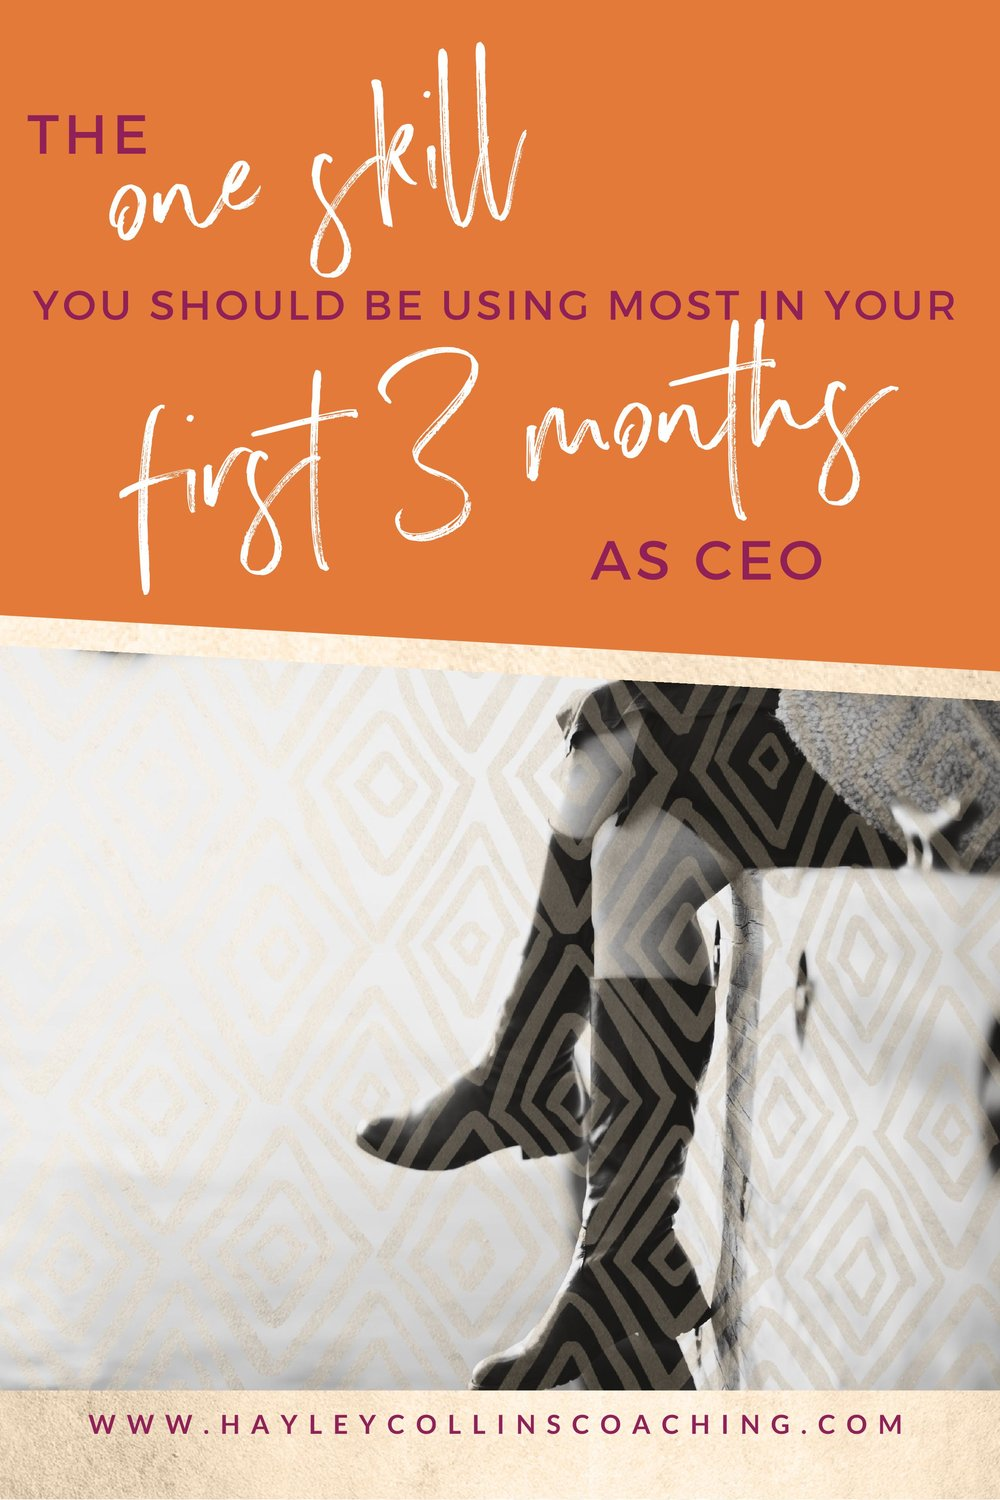 The one skill you should be using in your first 3 months as a CEO | Hayley Collins Coaching